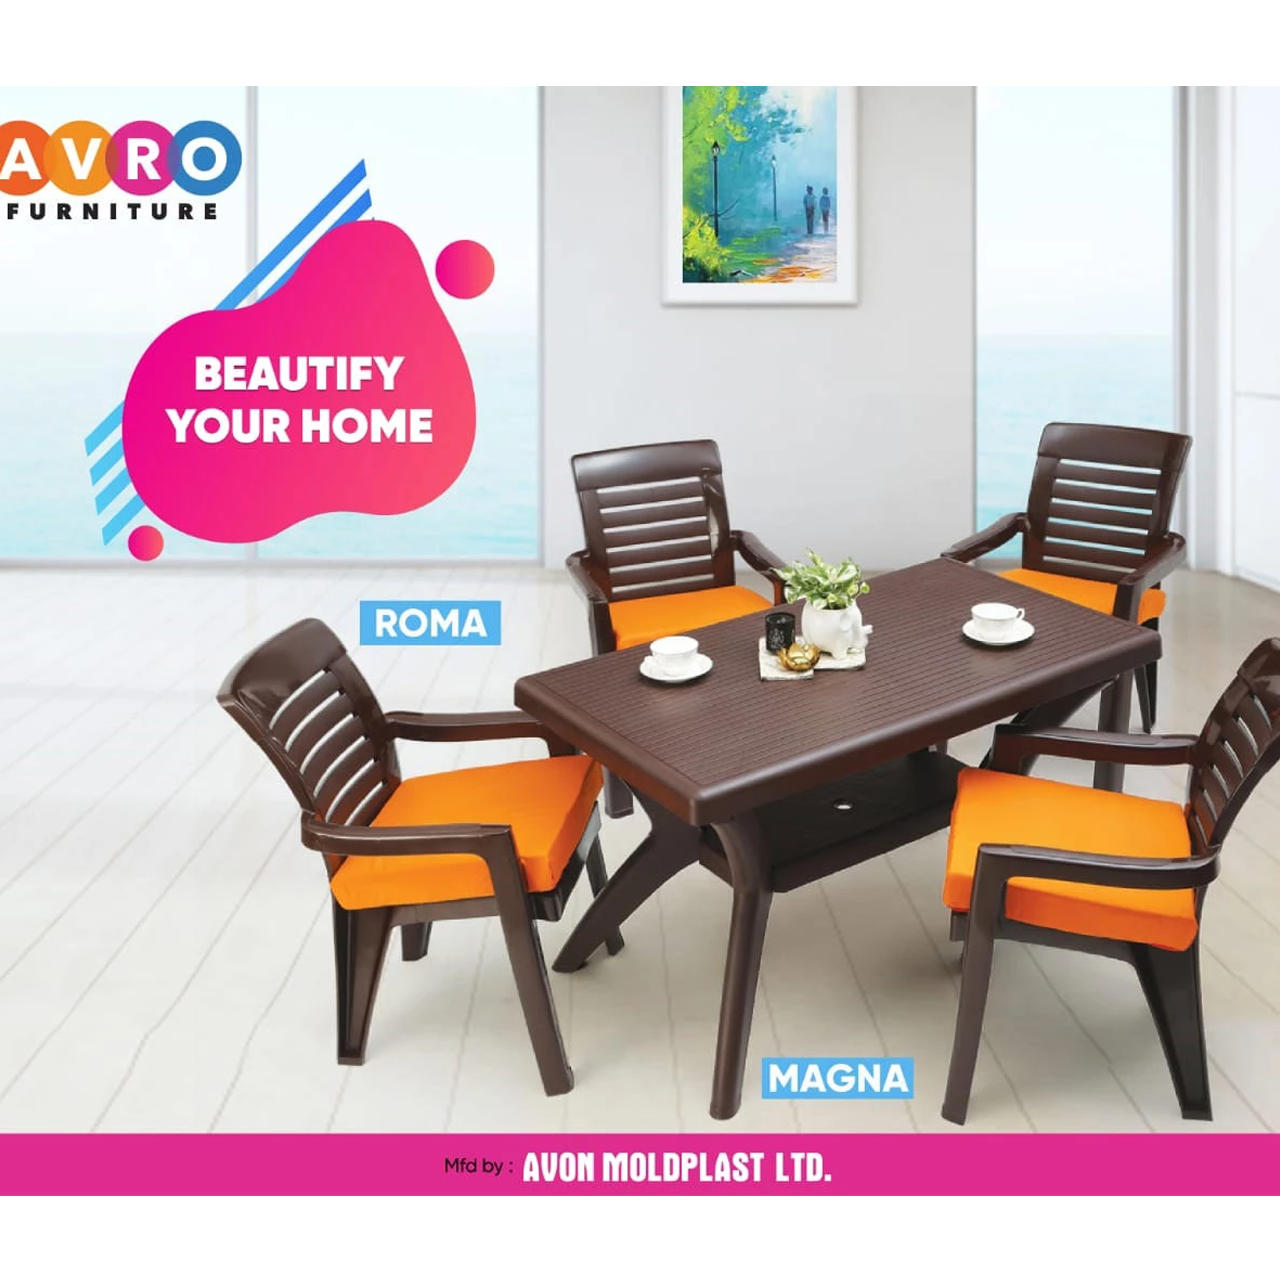 Add elegance to your house with Avro Furniture